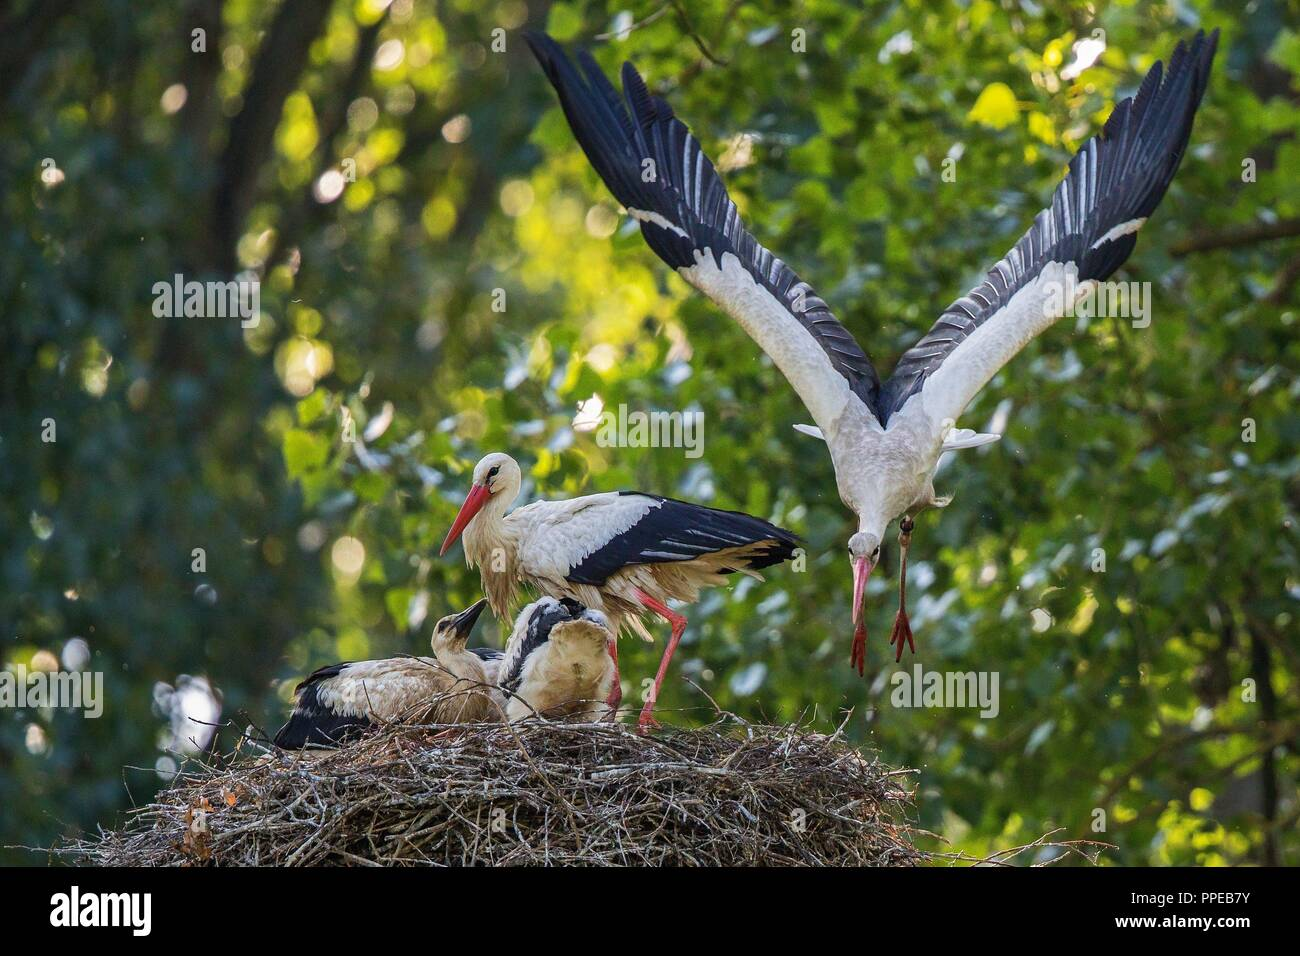 White Stork (Ciconia ciconia) adult flying of the nest with juveniles, Baden-Wuerttemberg, Germany | usage worldwide Stock Photo